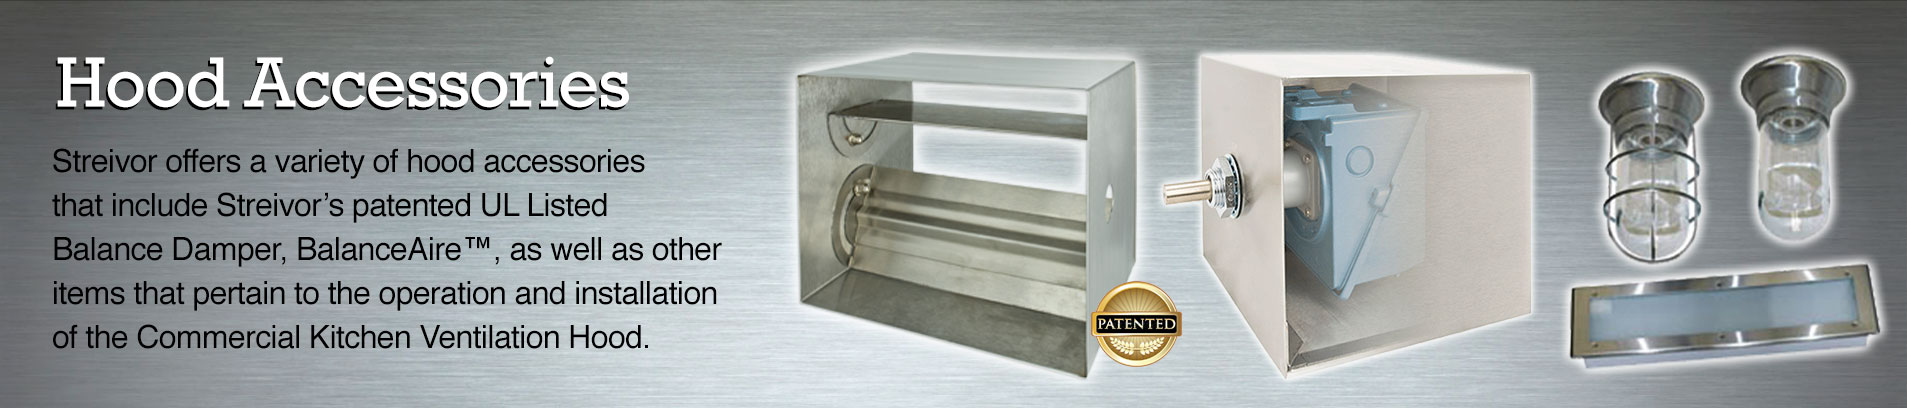 Commercial Kitchen Ventilation Hood Accessories